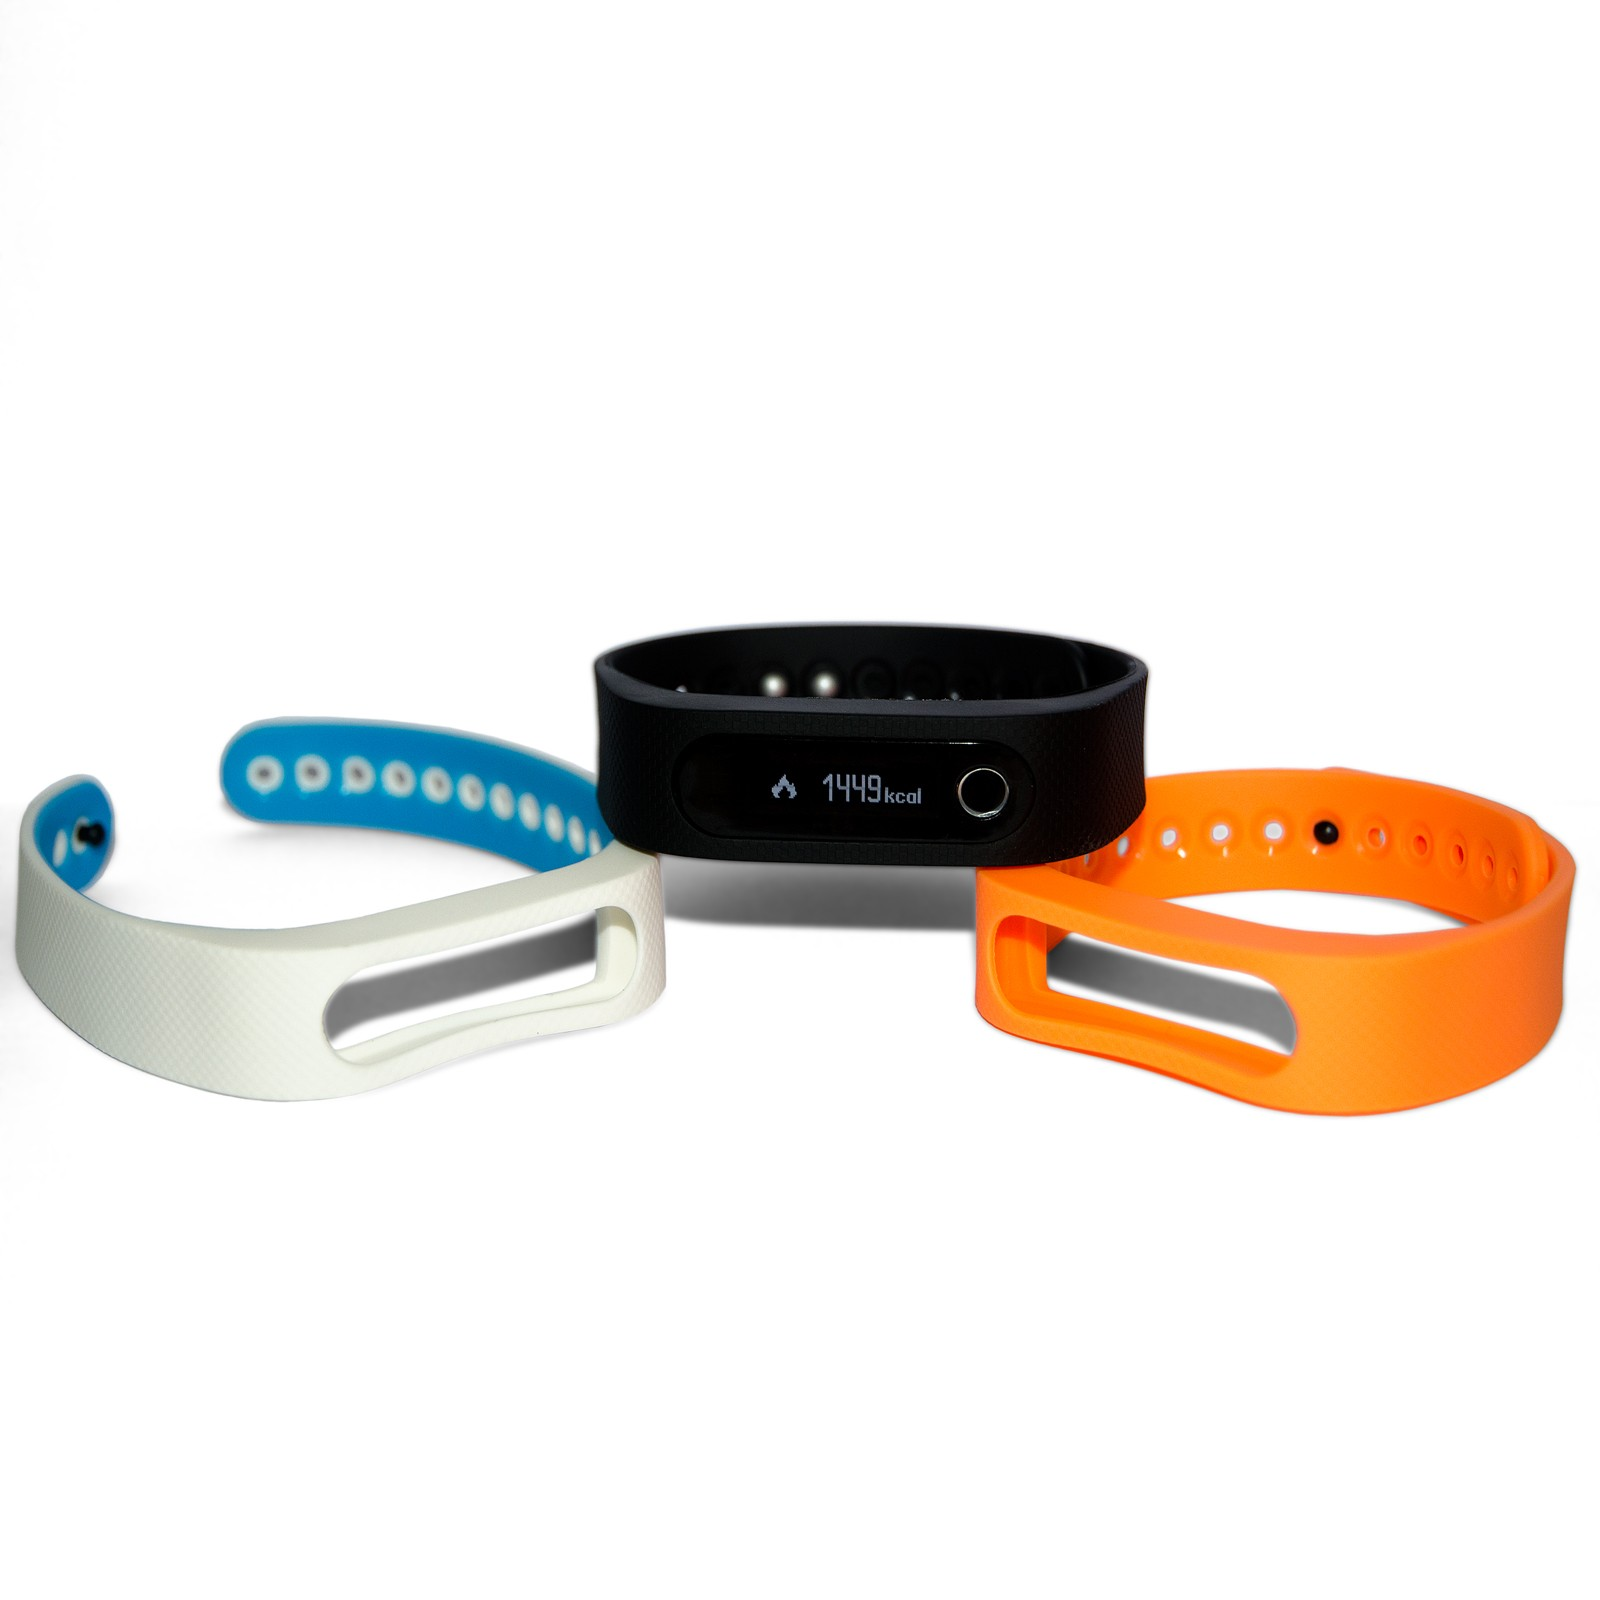 ifitness activity tracker instructions